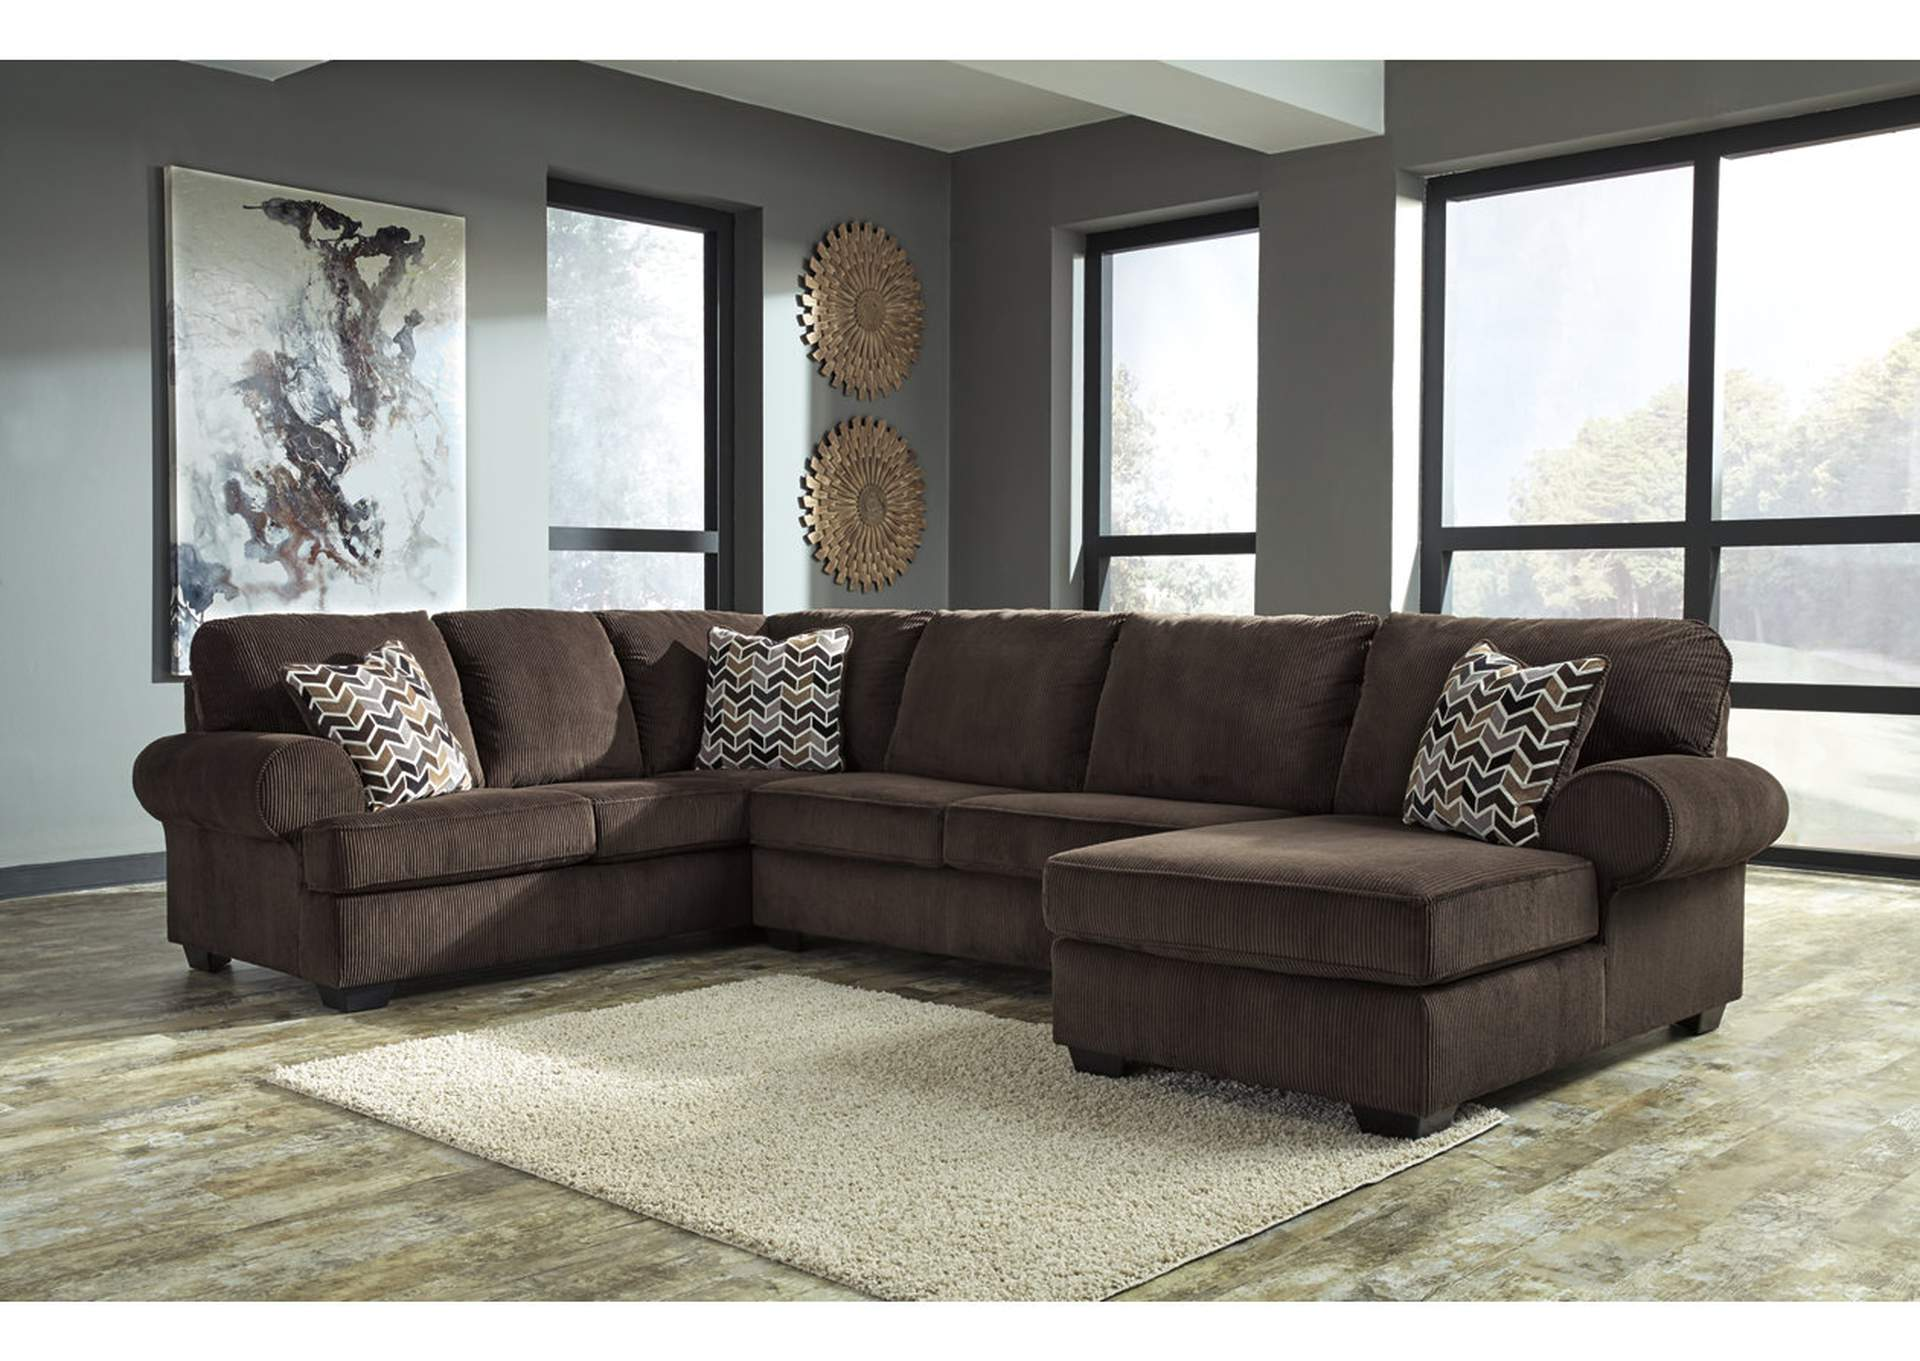 Jinllingsly Chocolate Left Facing Sofa Sectional,Signature Design By Ashley